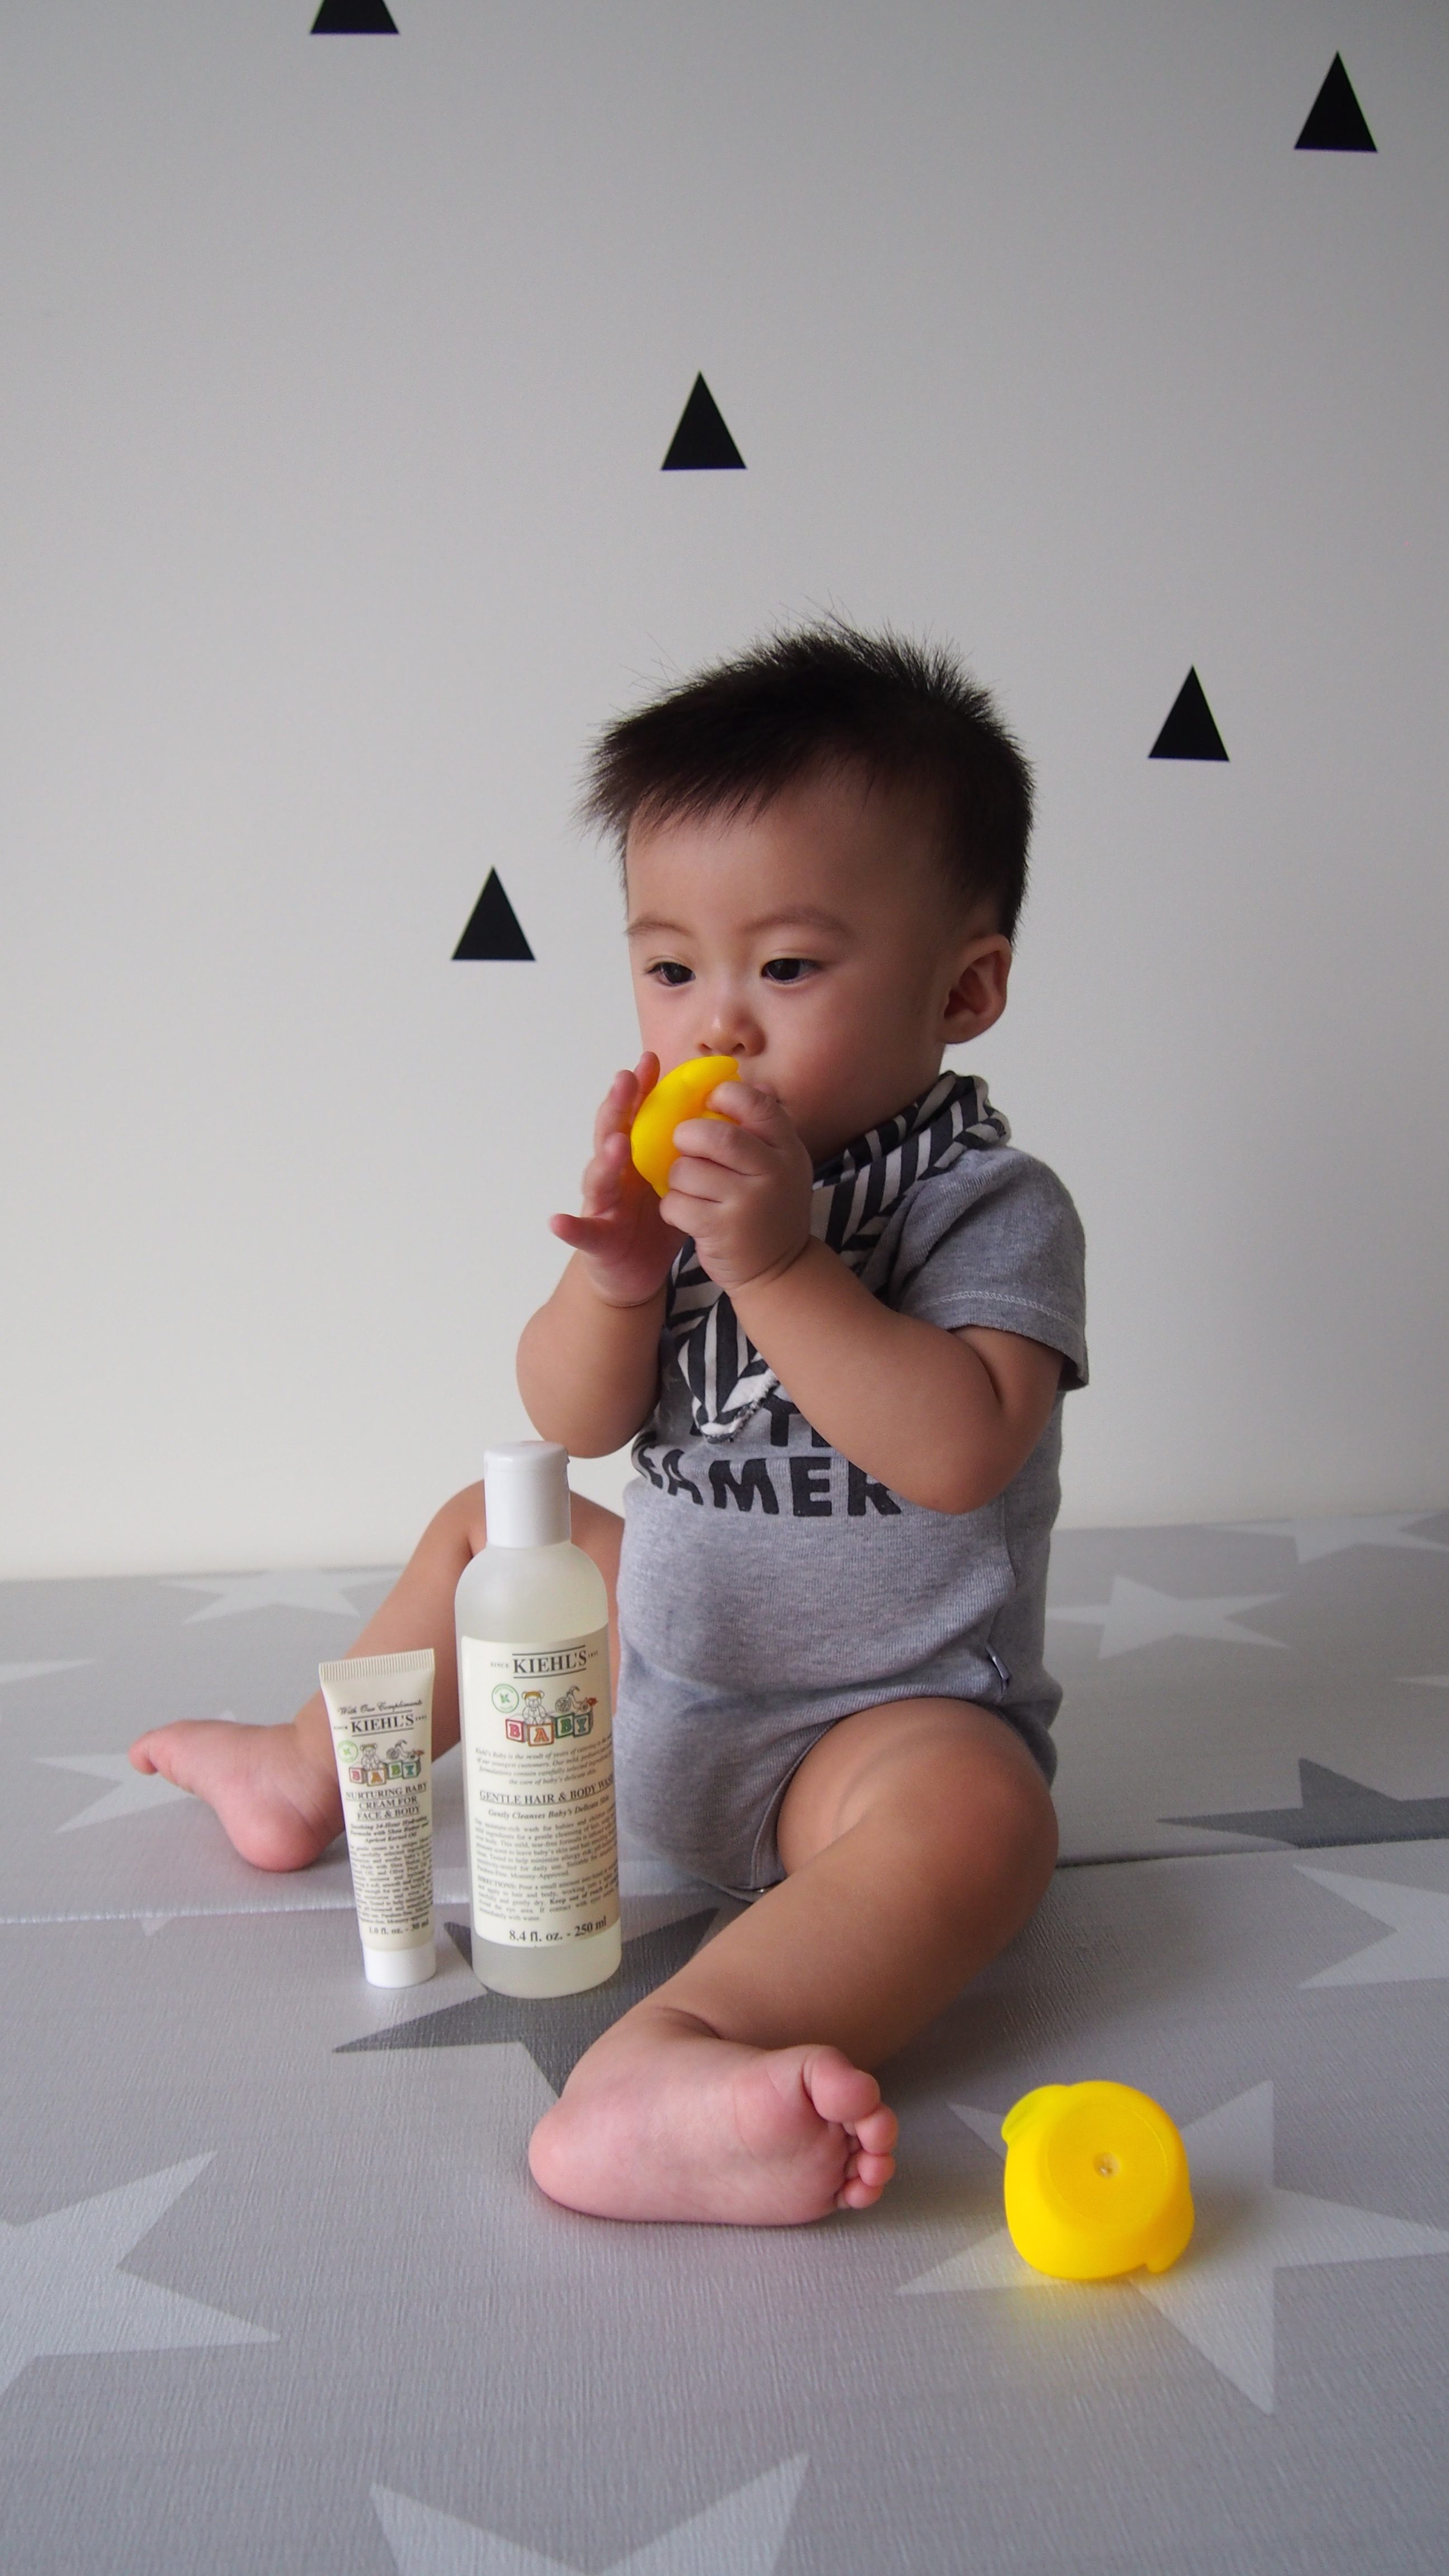 Kiehls New Gentle Foaming Hair Body Wash Daprayer Baby Lip Balm Slather On My But With Safe Formula I Feel Much Safer Kissing Him Even When Have